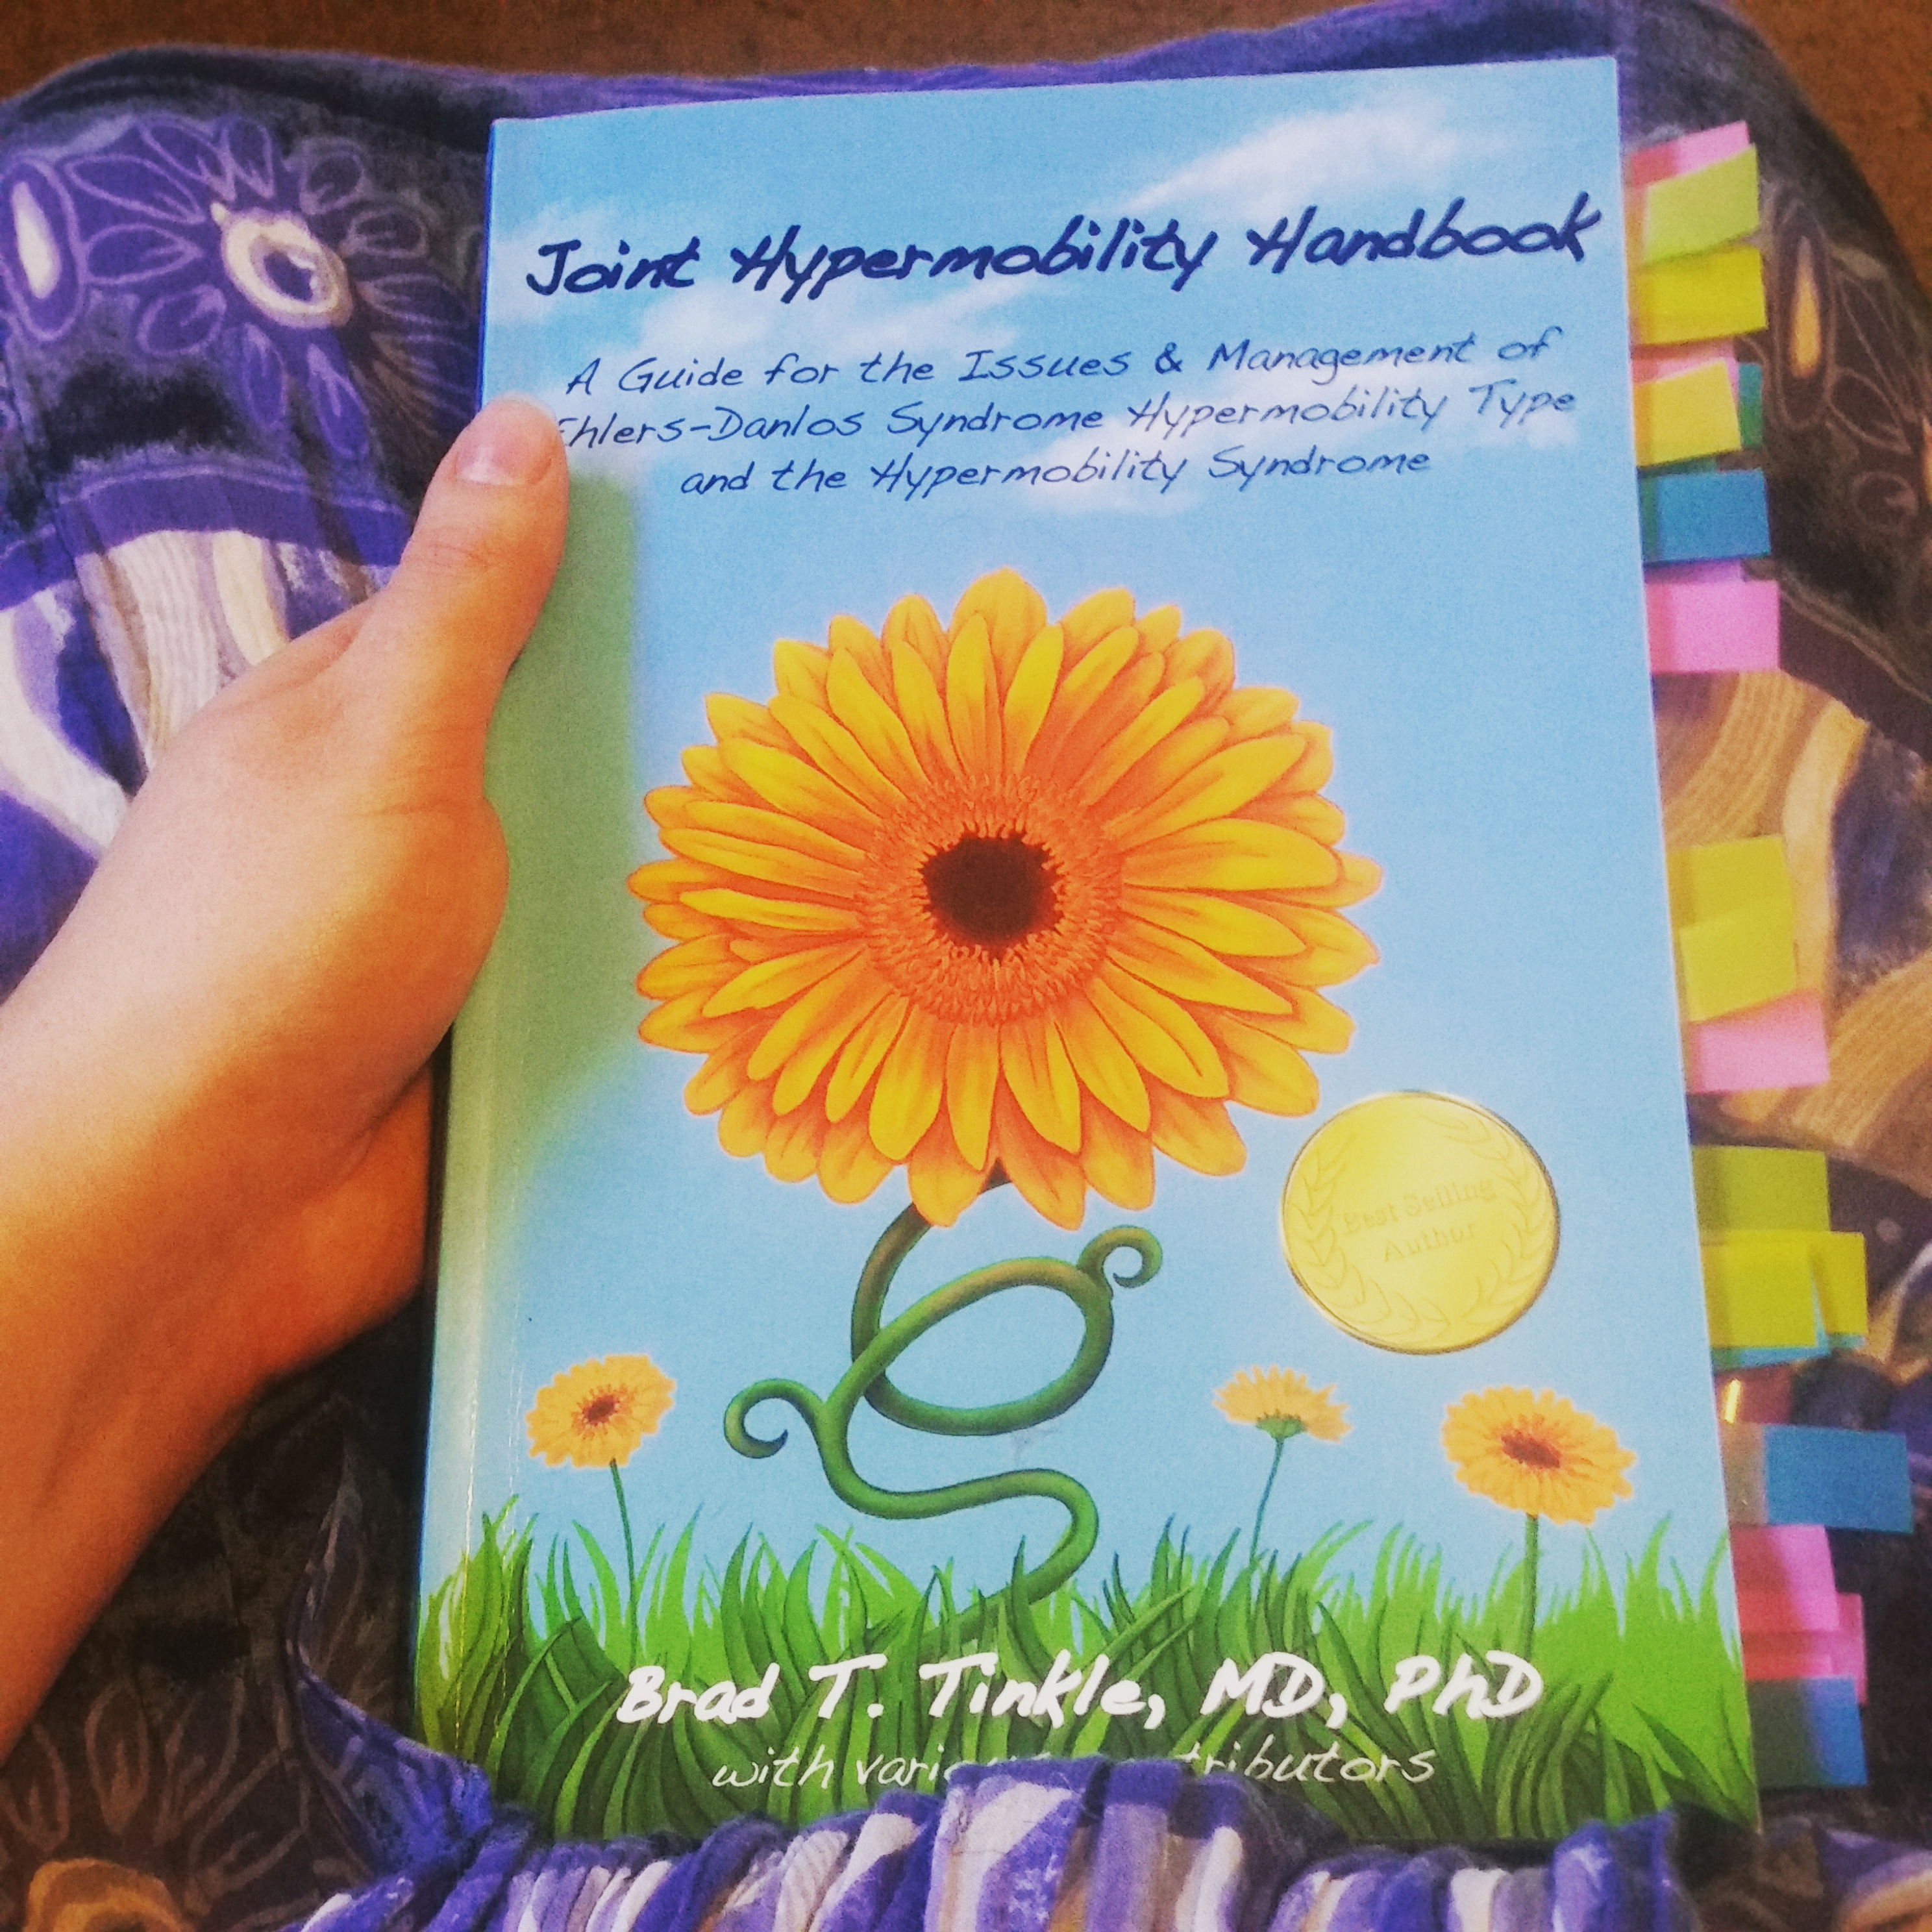 The blue book with an orange flower on the cover, lined with dozens of colorful bookmarks